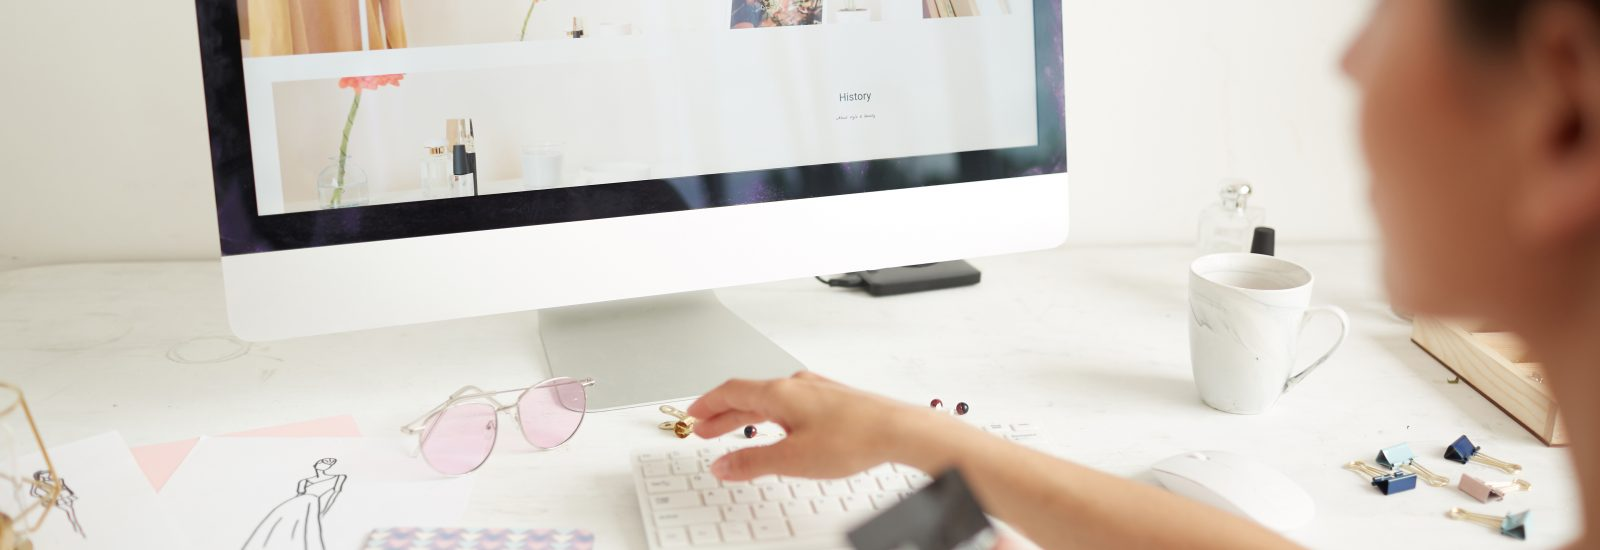 Close-up of woman sitting at table and buying clothing via online store using credit card, focus on computer screen payment security - buying clothing via online store SDZ3H9W 1600x550 - Payment Security